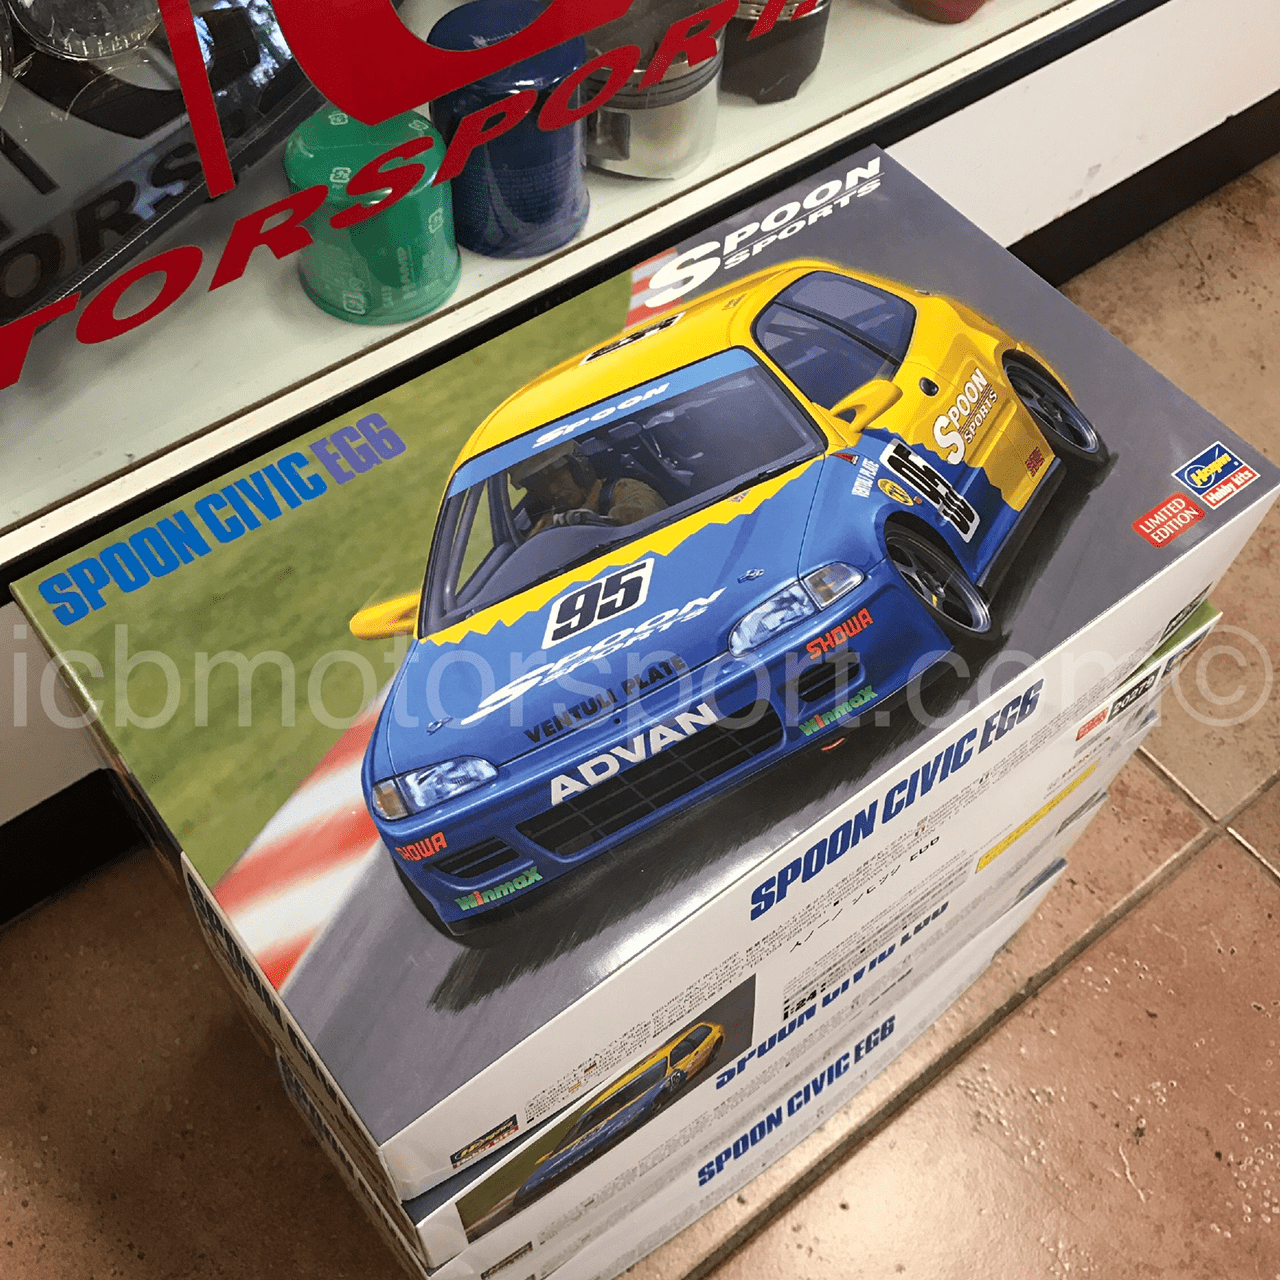 Spoon Sports Civic EG6 N1 Endurance 1/24 Model Kit by Hasegawa